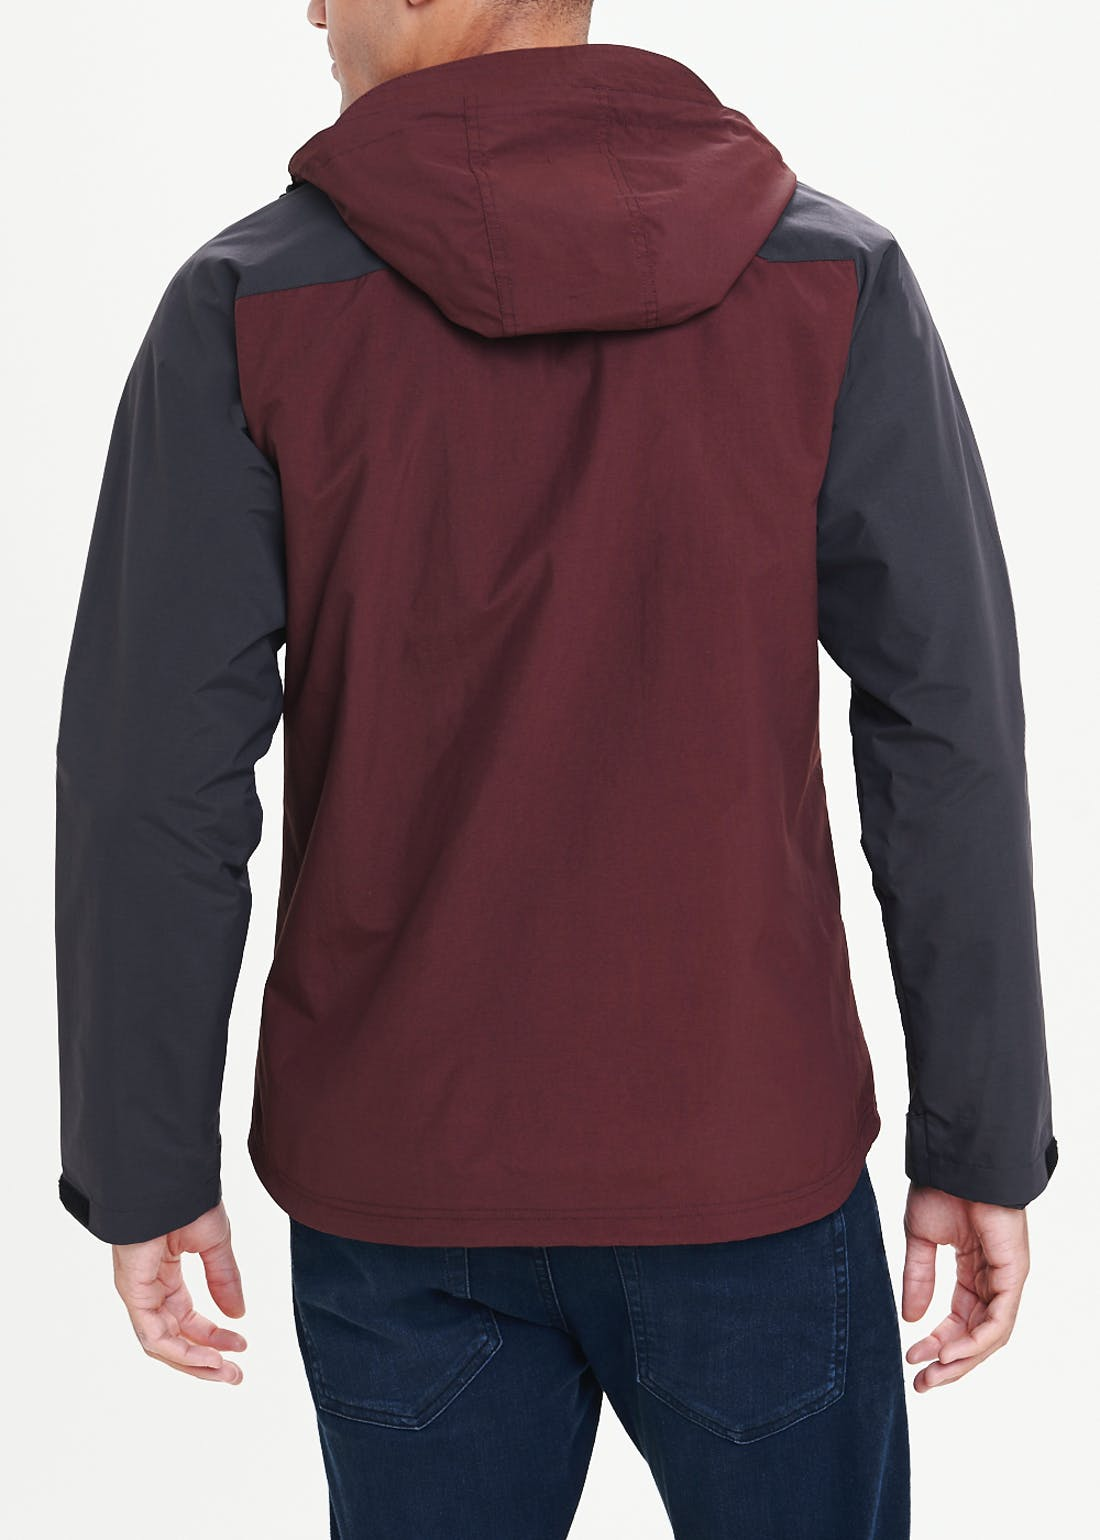 Rust Showerproof Hooded Jacket